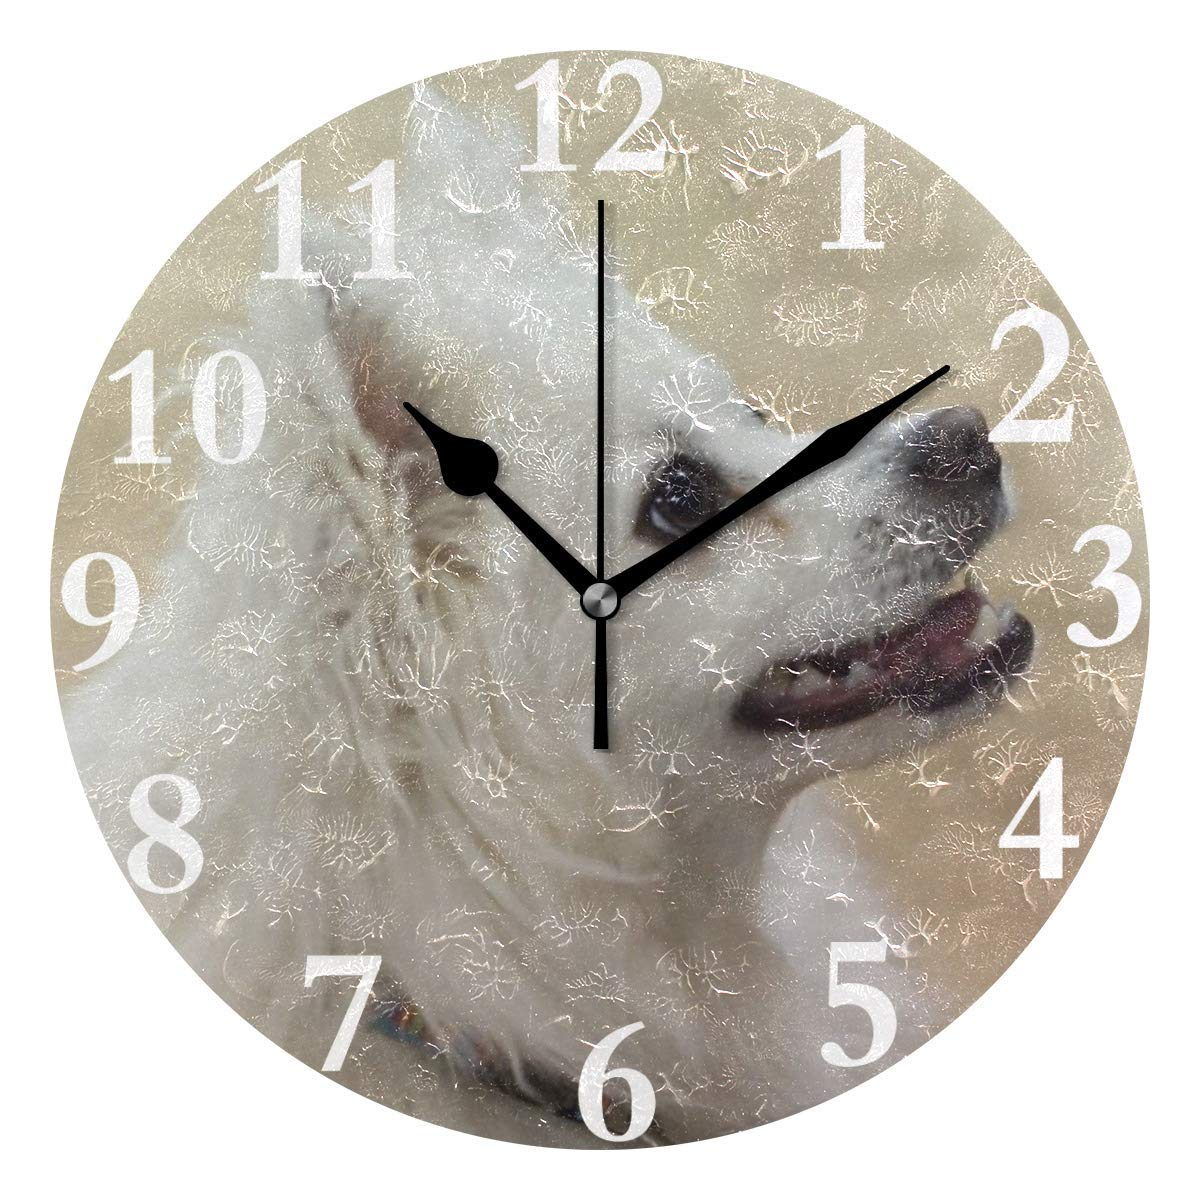 Oh Sweety Wall Clock American Eskimo Dog Custom Silent Non Ticking Decorative Round Digital Clocks for Home/Office/School Clock